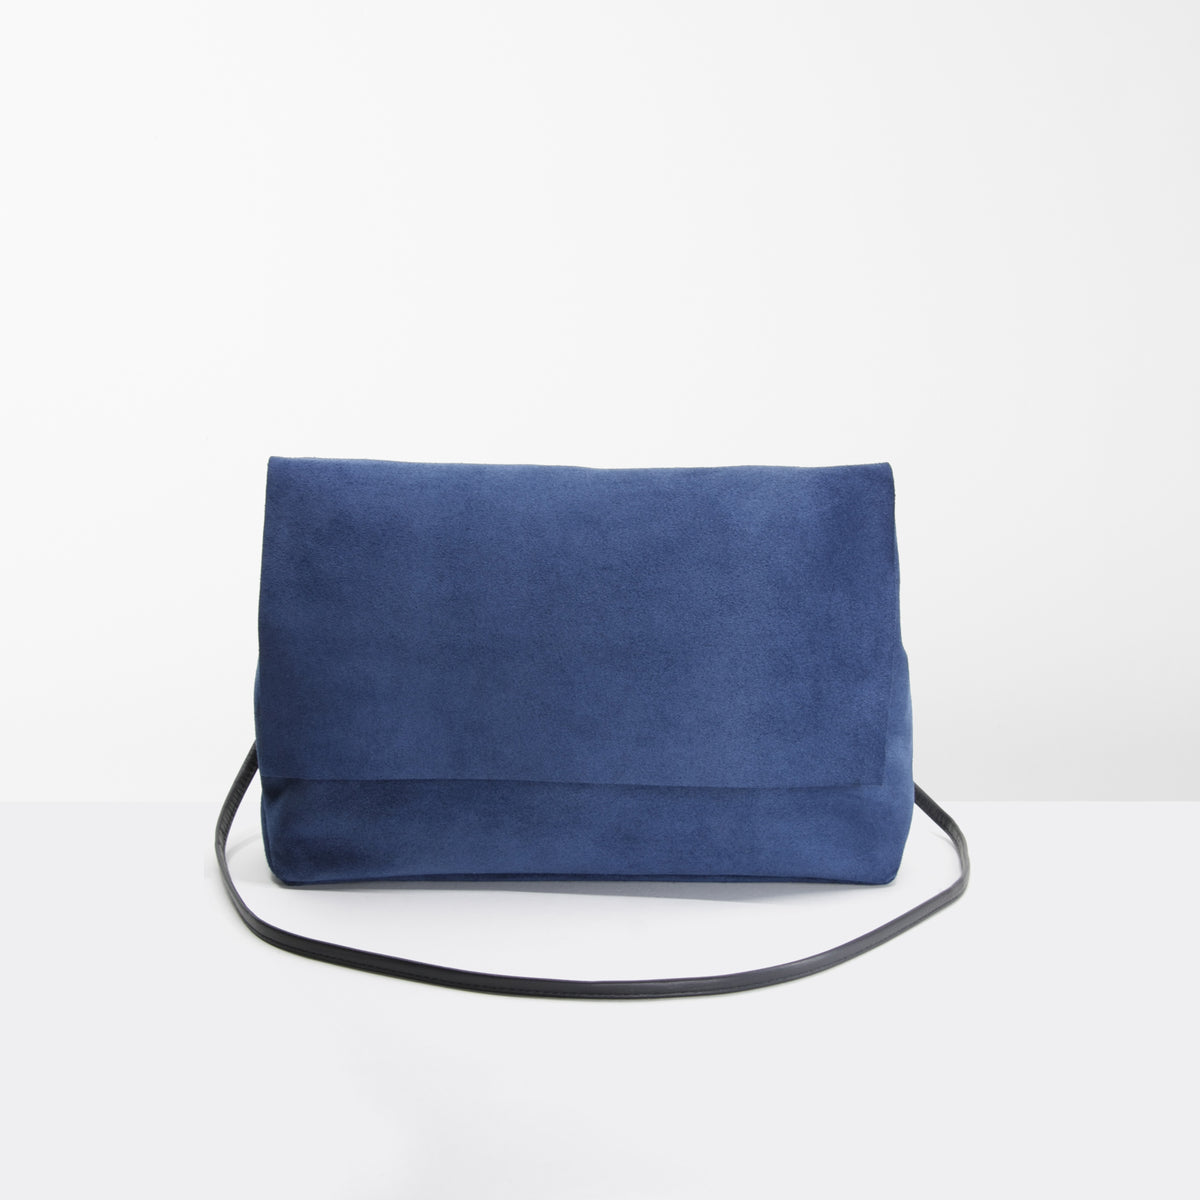 Royal Blue & Mustard Suede Handbag - Sold by Chic & Basta